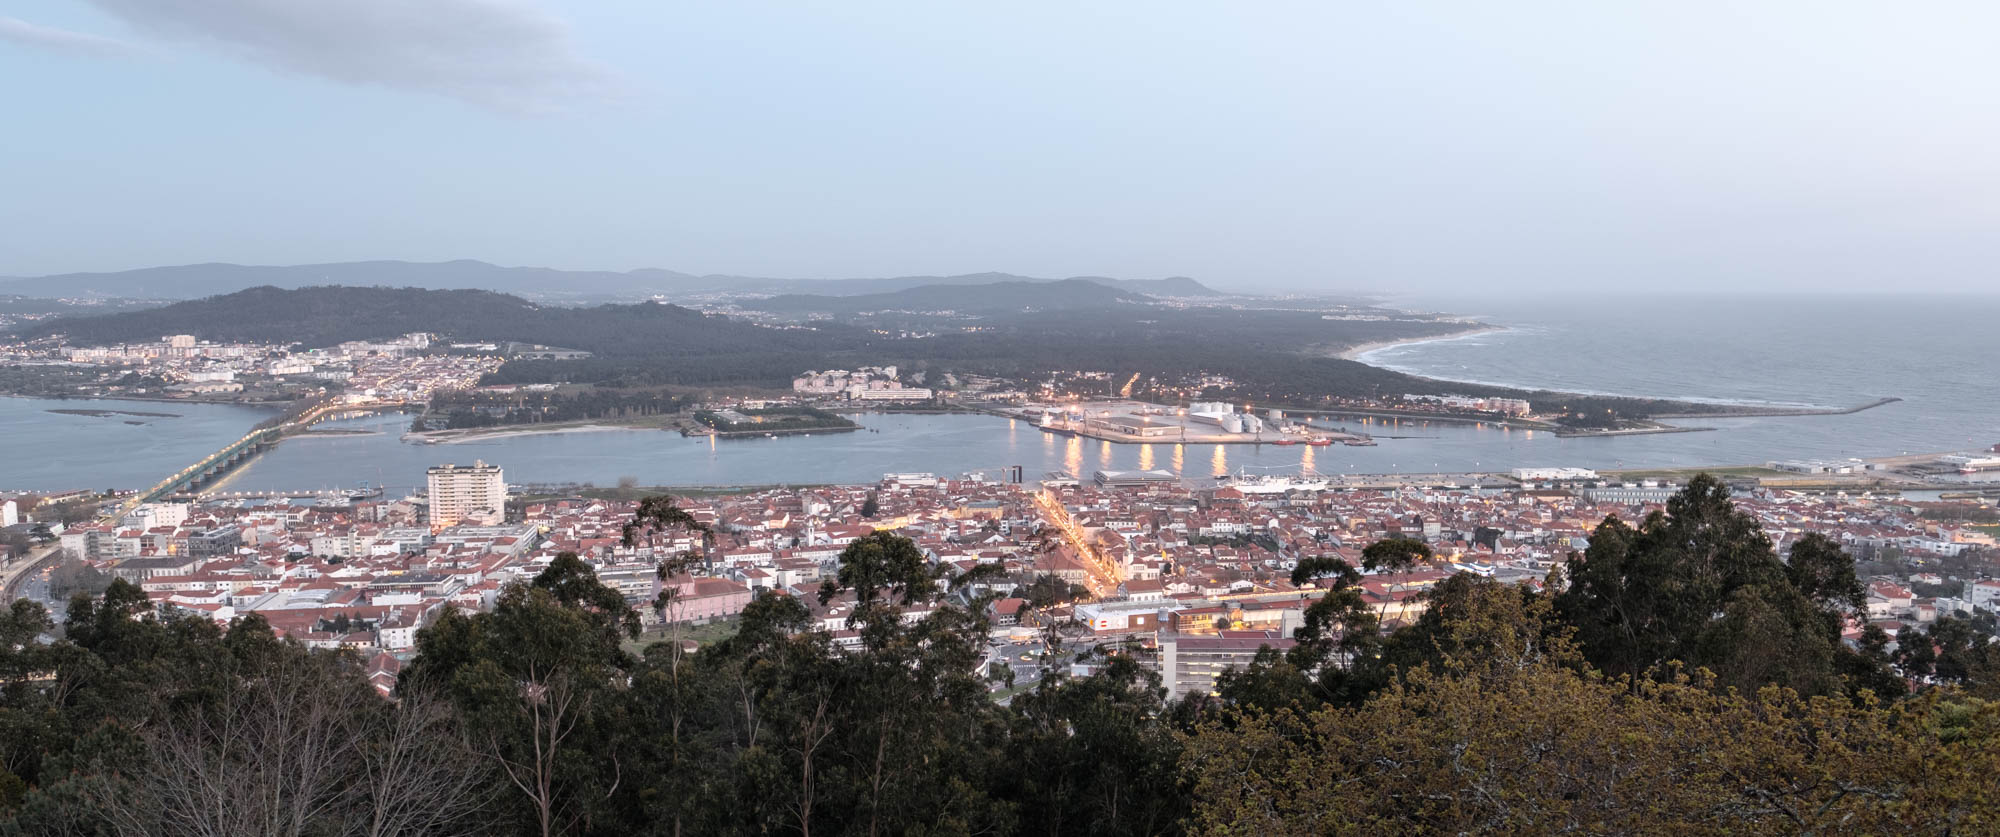 Viana do Castelo am Abend